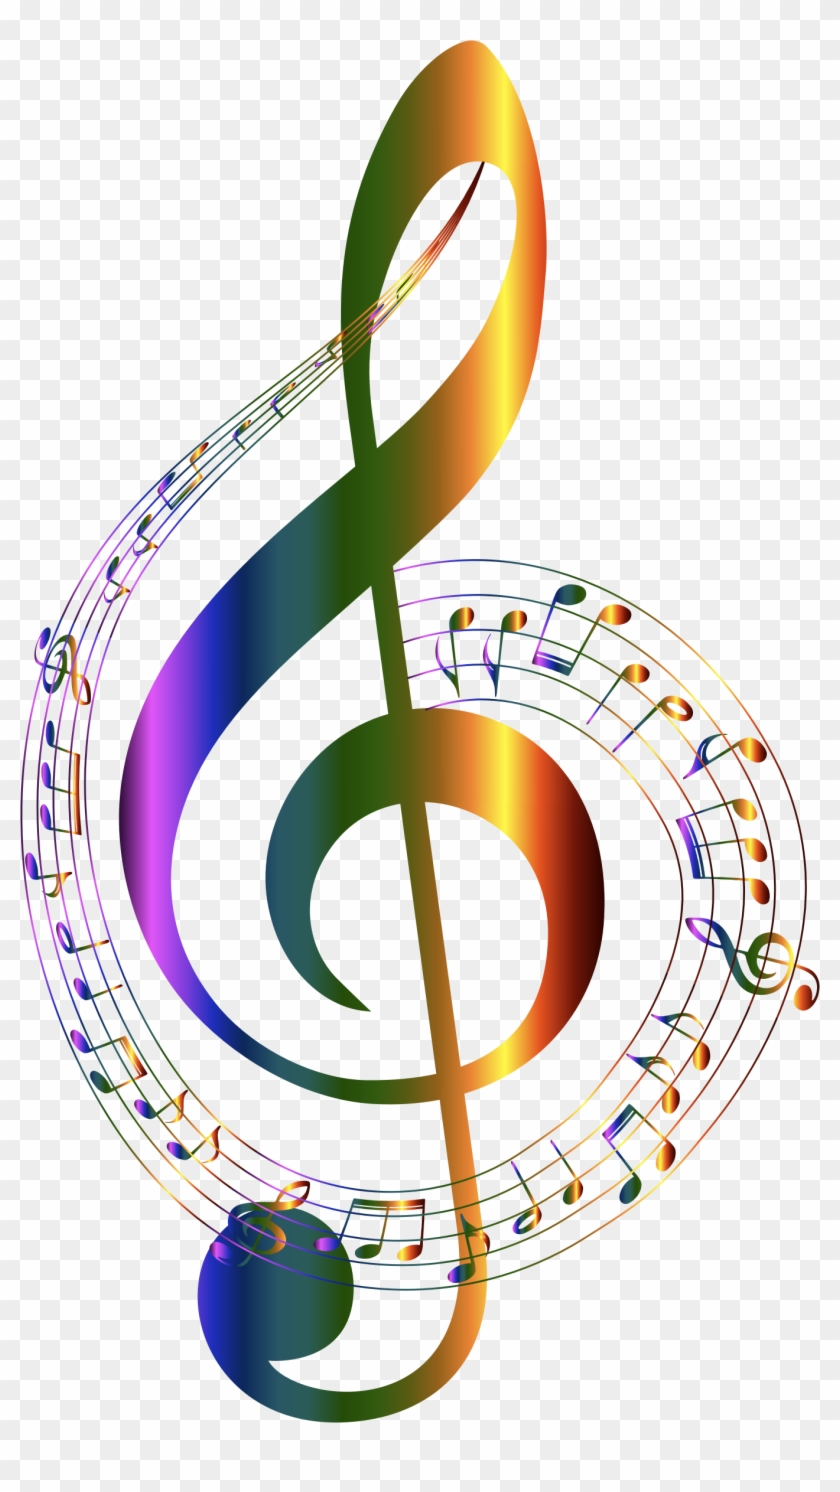 Chromatic Musical Notes Typography No Background Clipart - Transparent Background Music Notes #119101